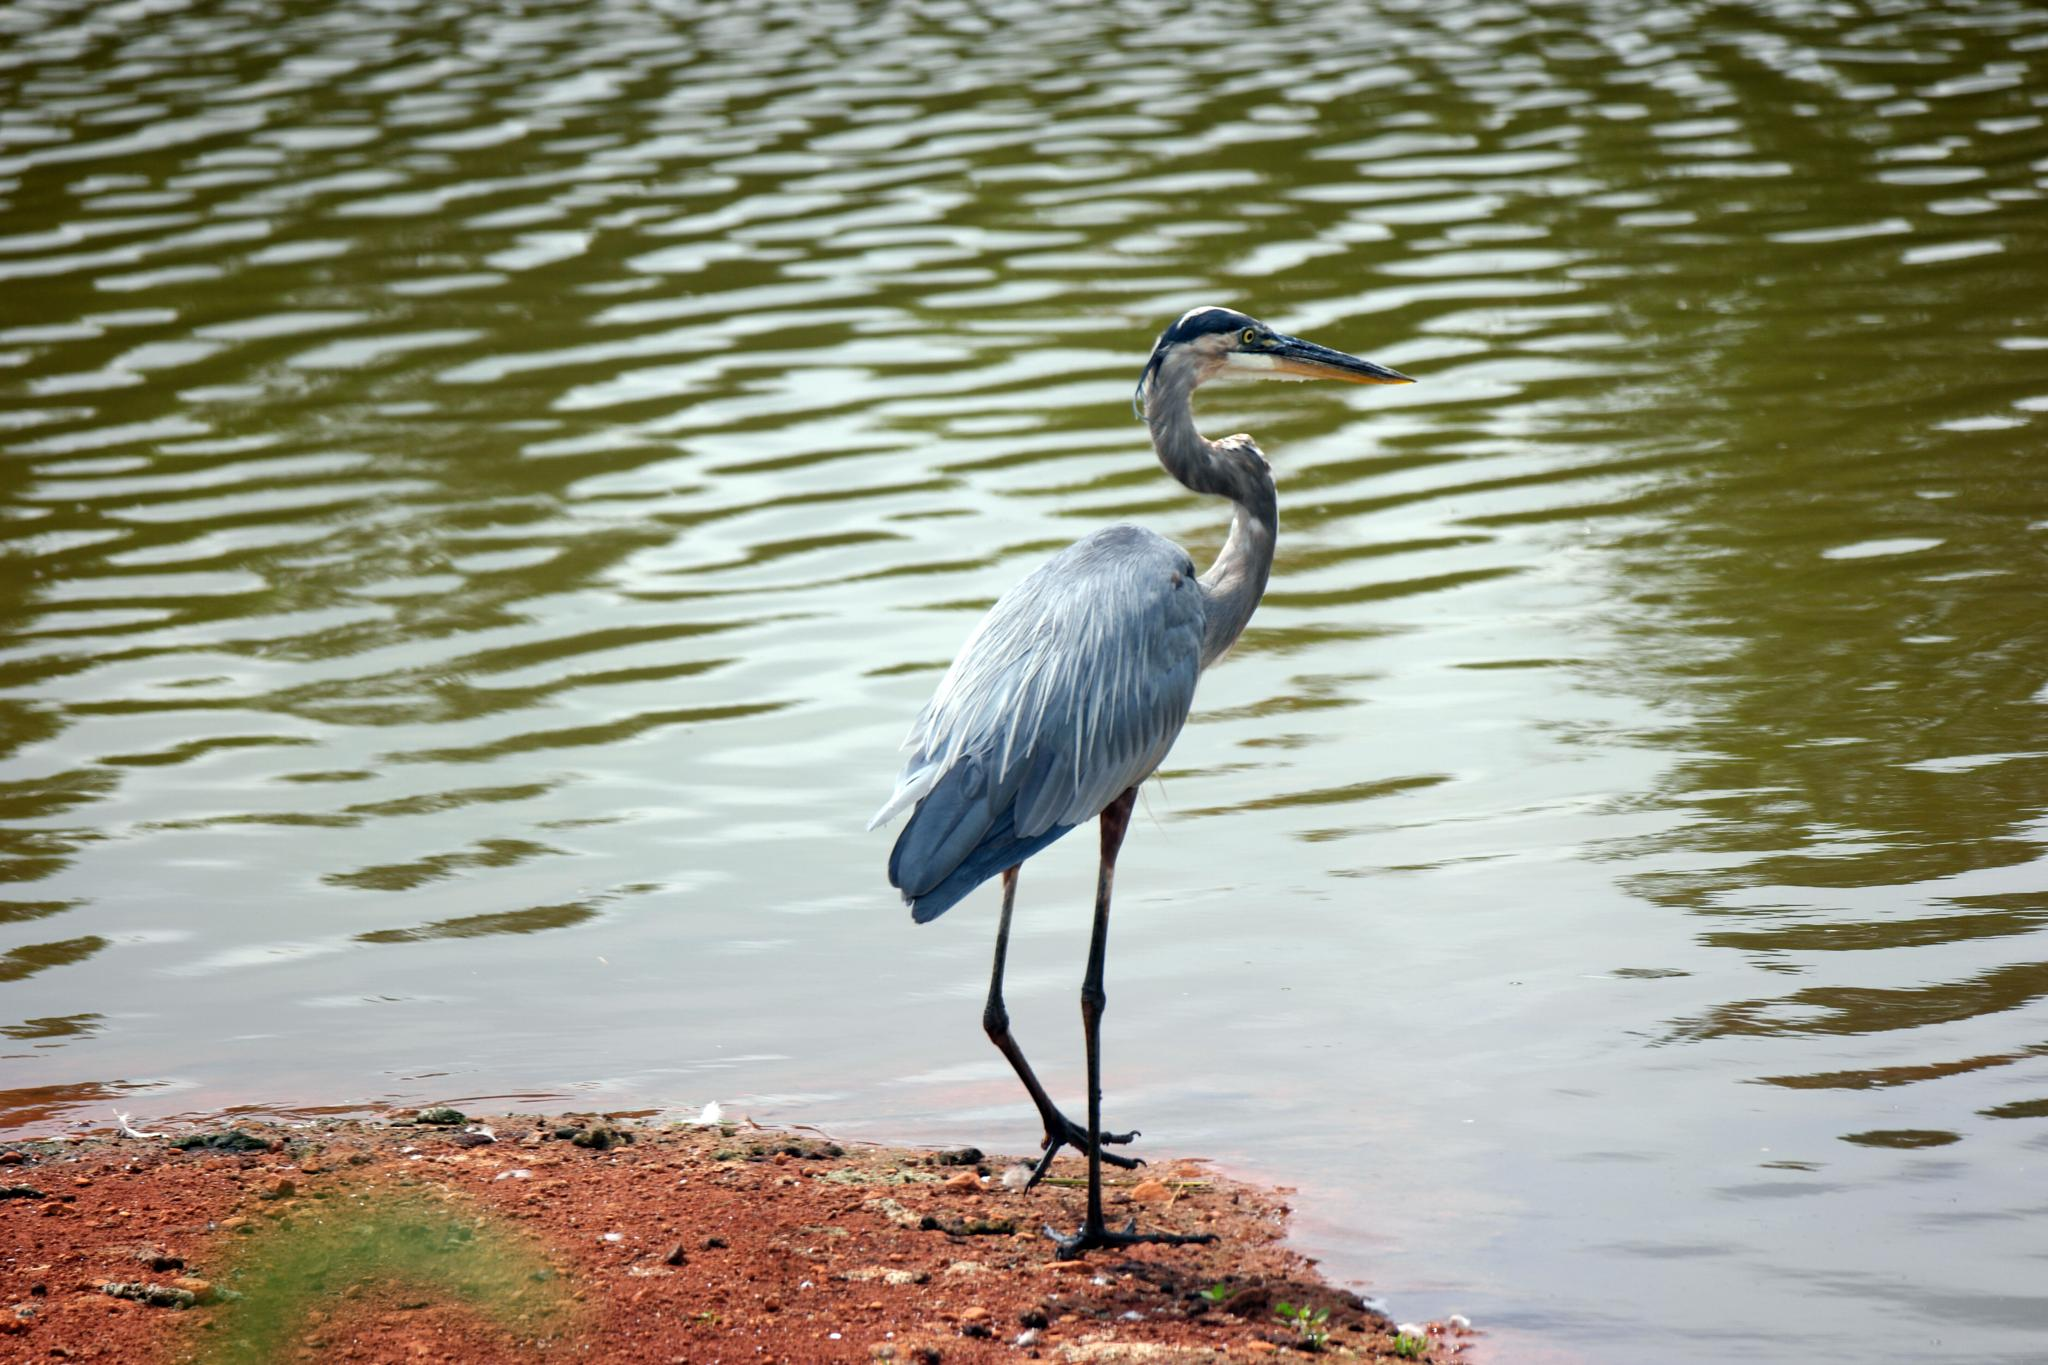 Bird and Water by afryans